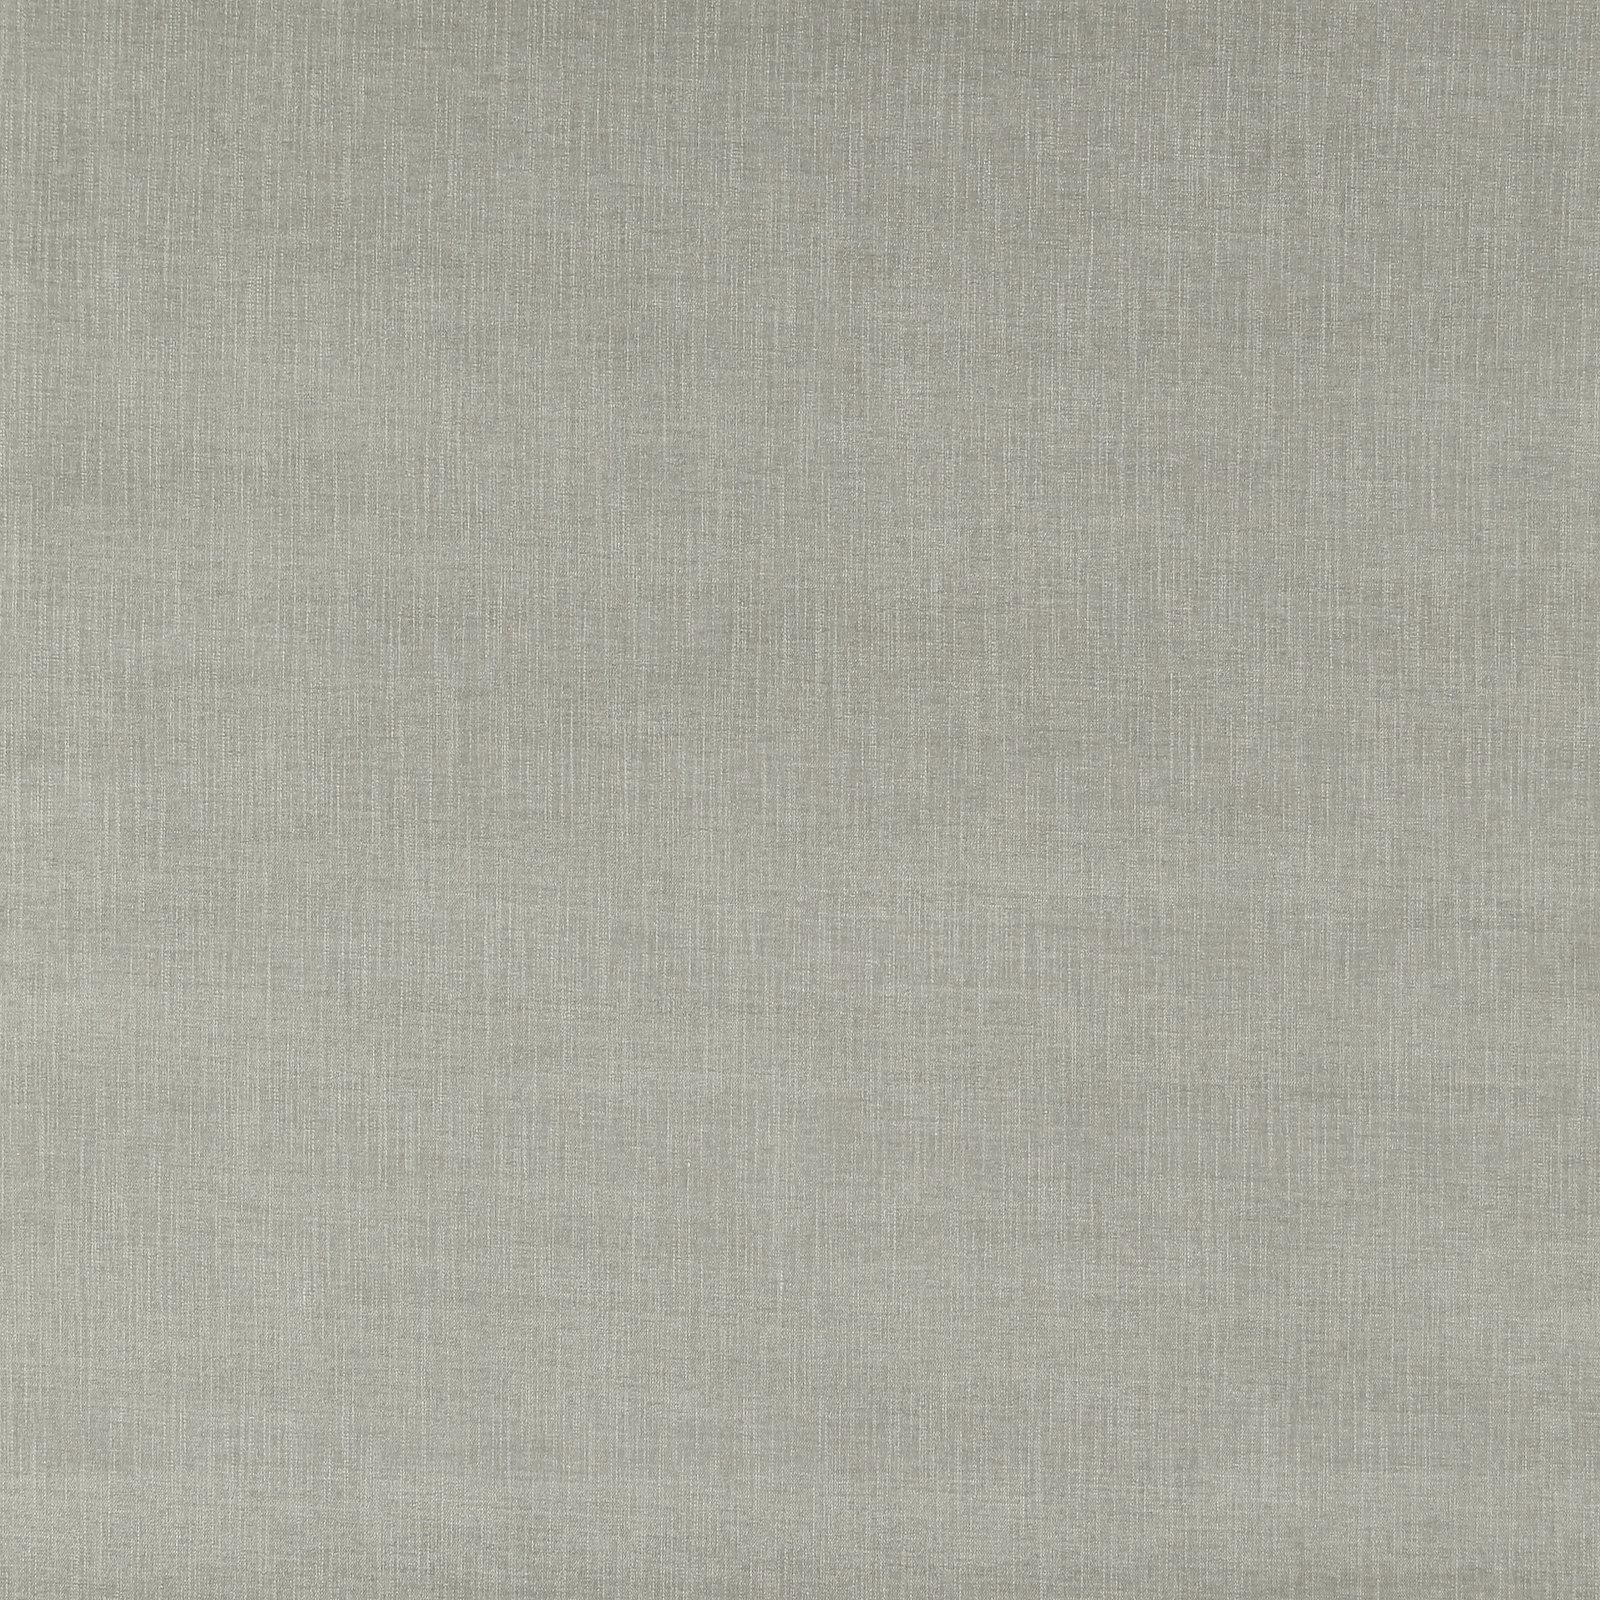 Upholstery chenille structure light grey 824040_pack_sp